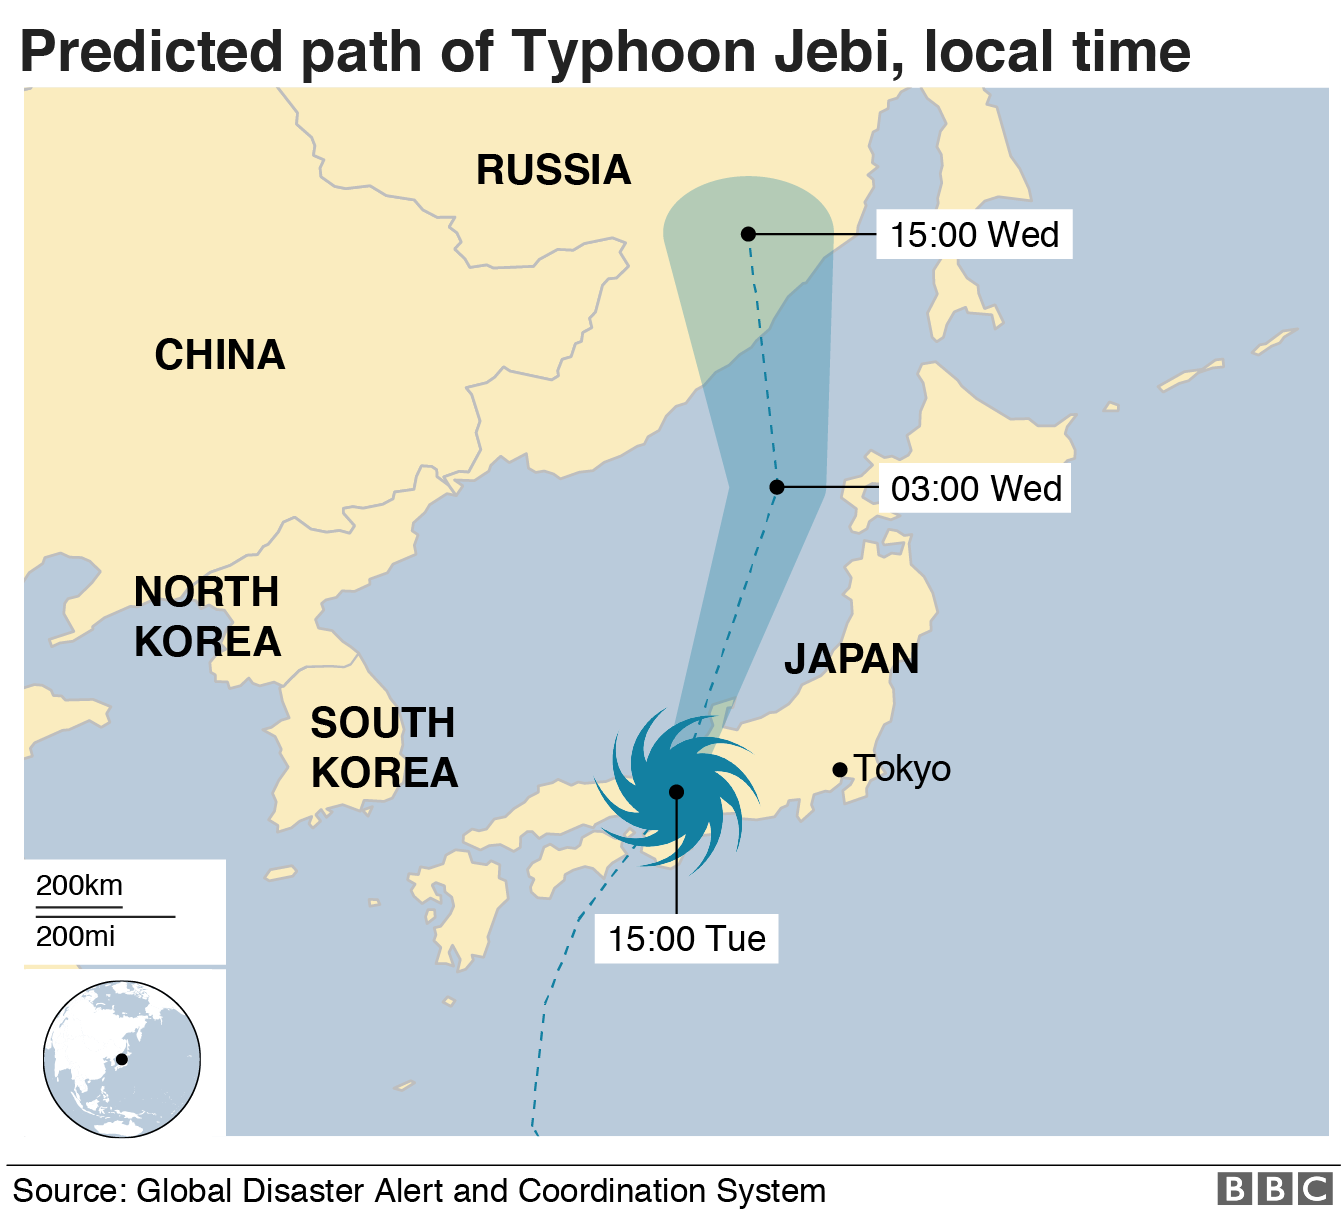 Mad of predicted path of typhoon